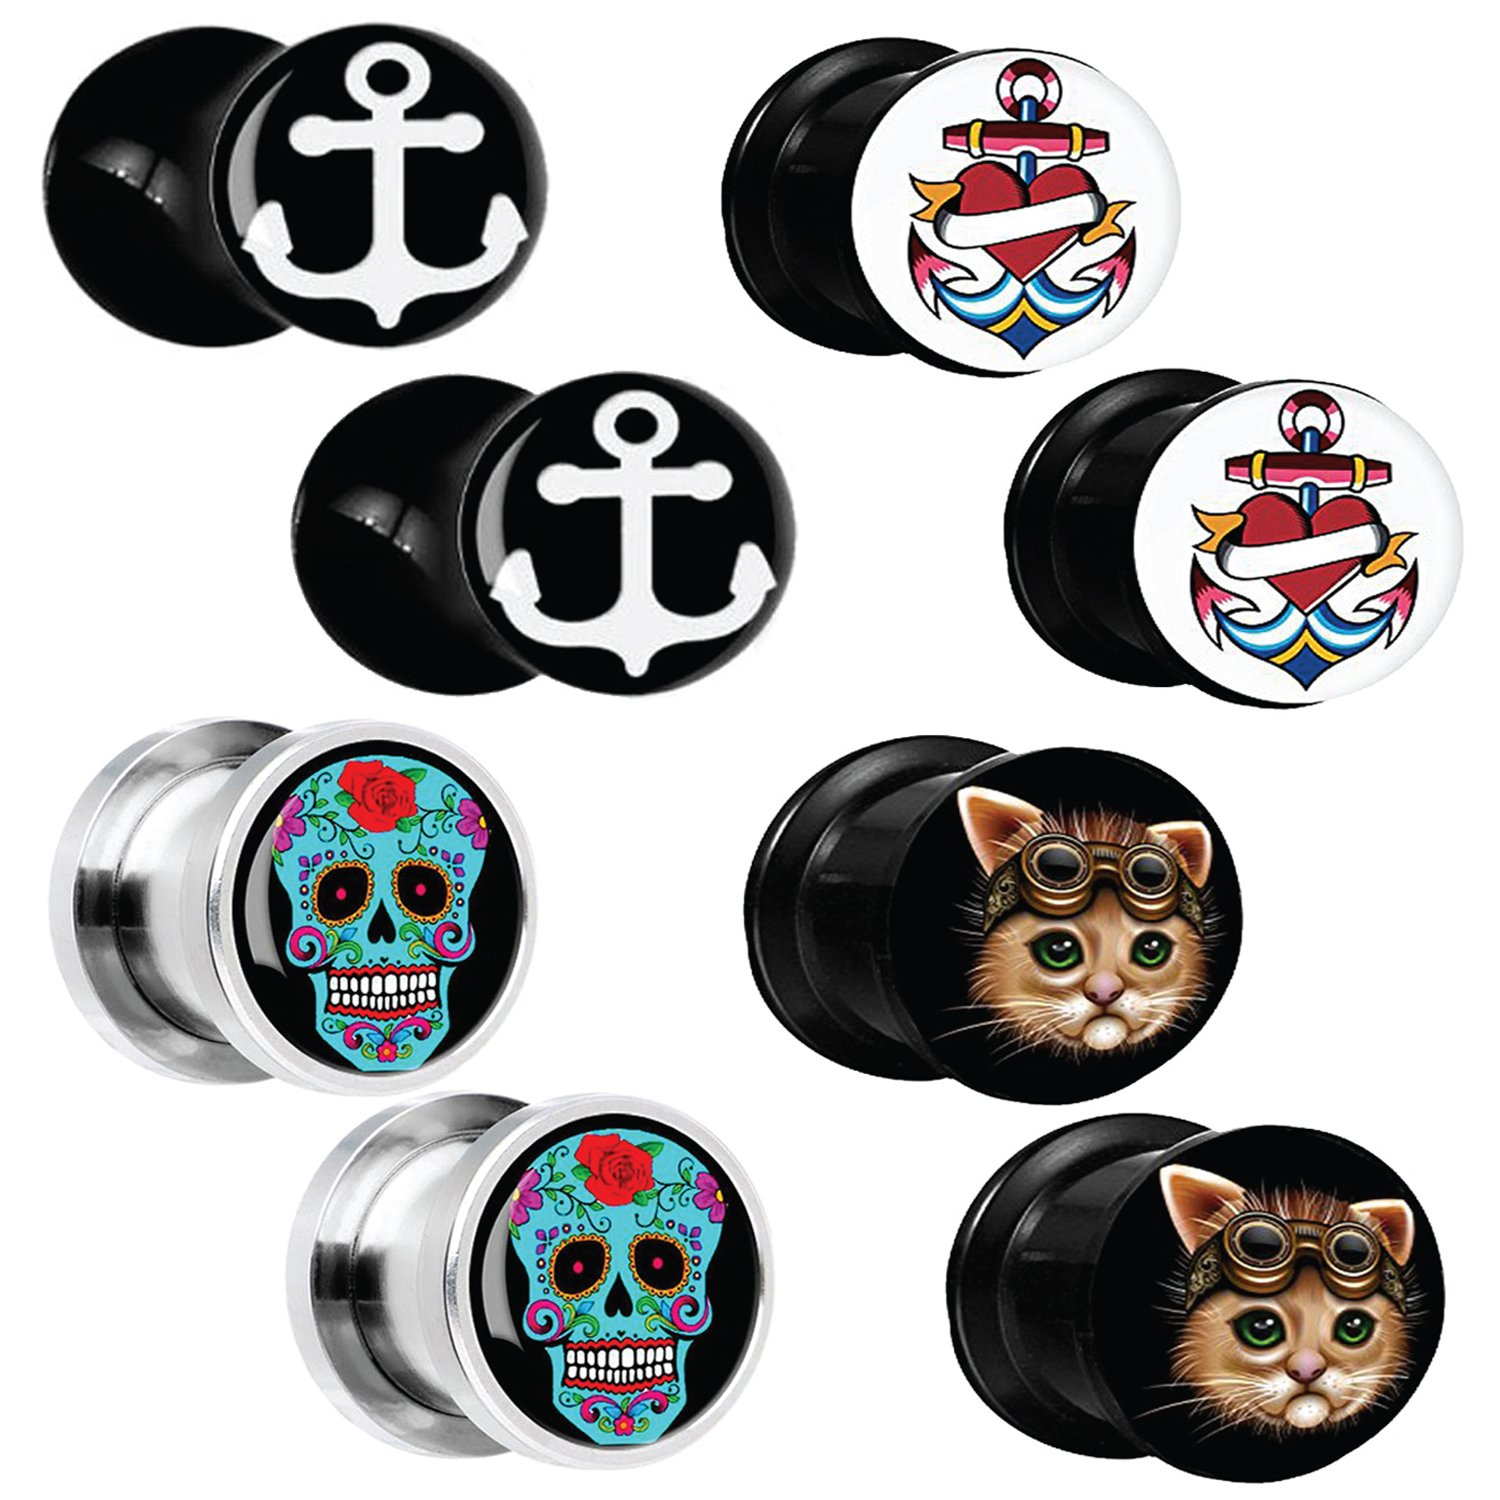 BodyJ4You 8PCS Gauge Plugs Anchor Steampunk Cat Skull Stainless Steel Double Flare Ear Expander 6G-12mm PL6333-00G